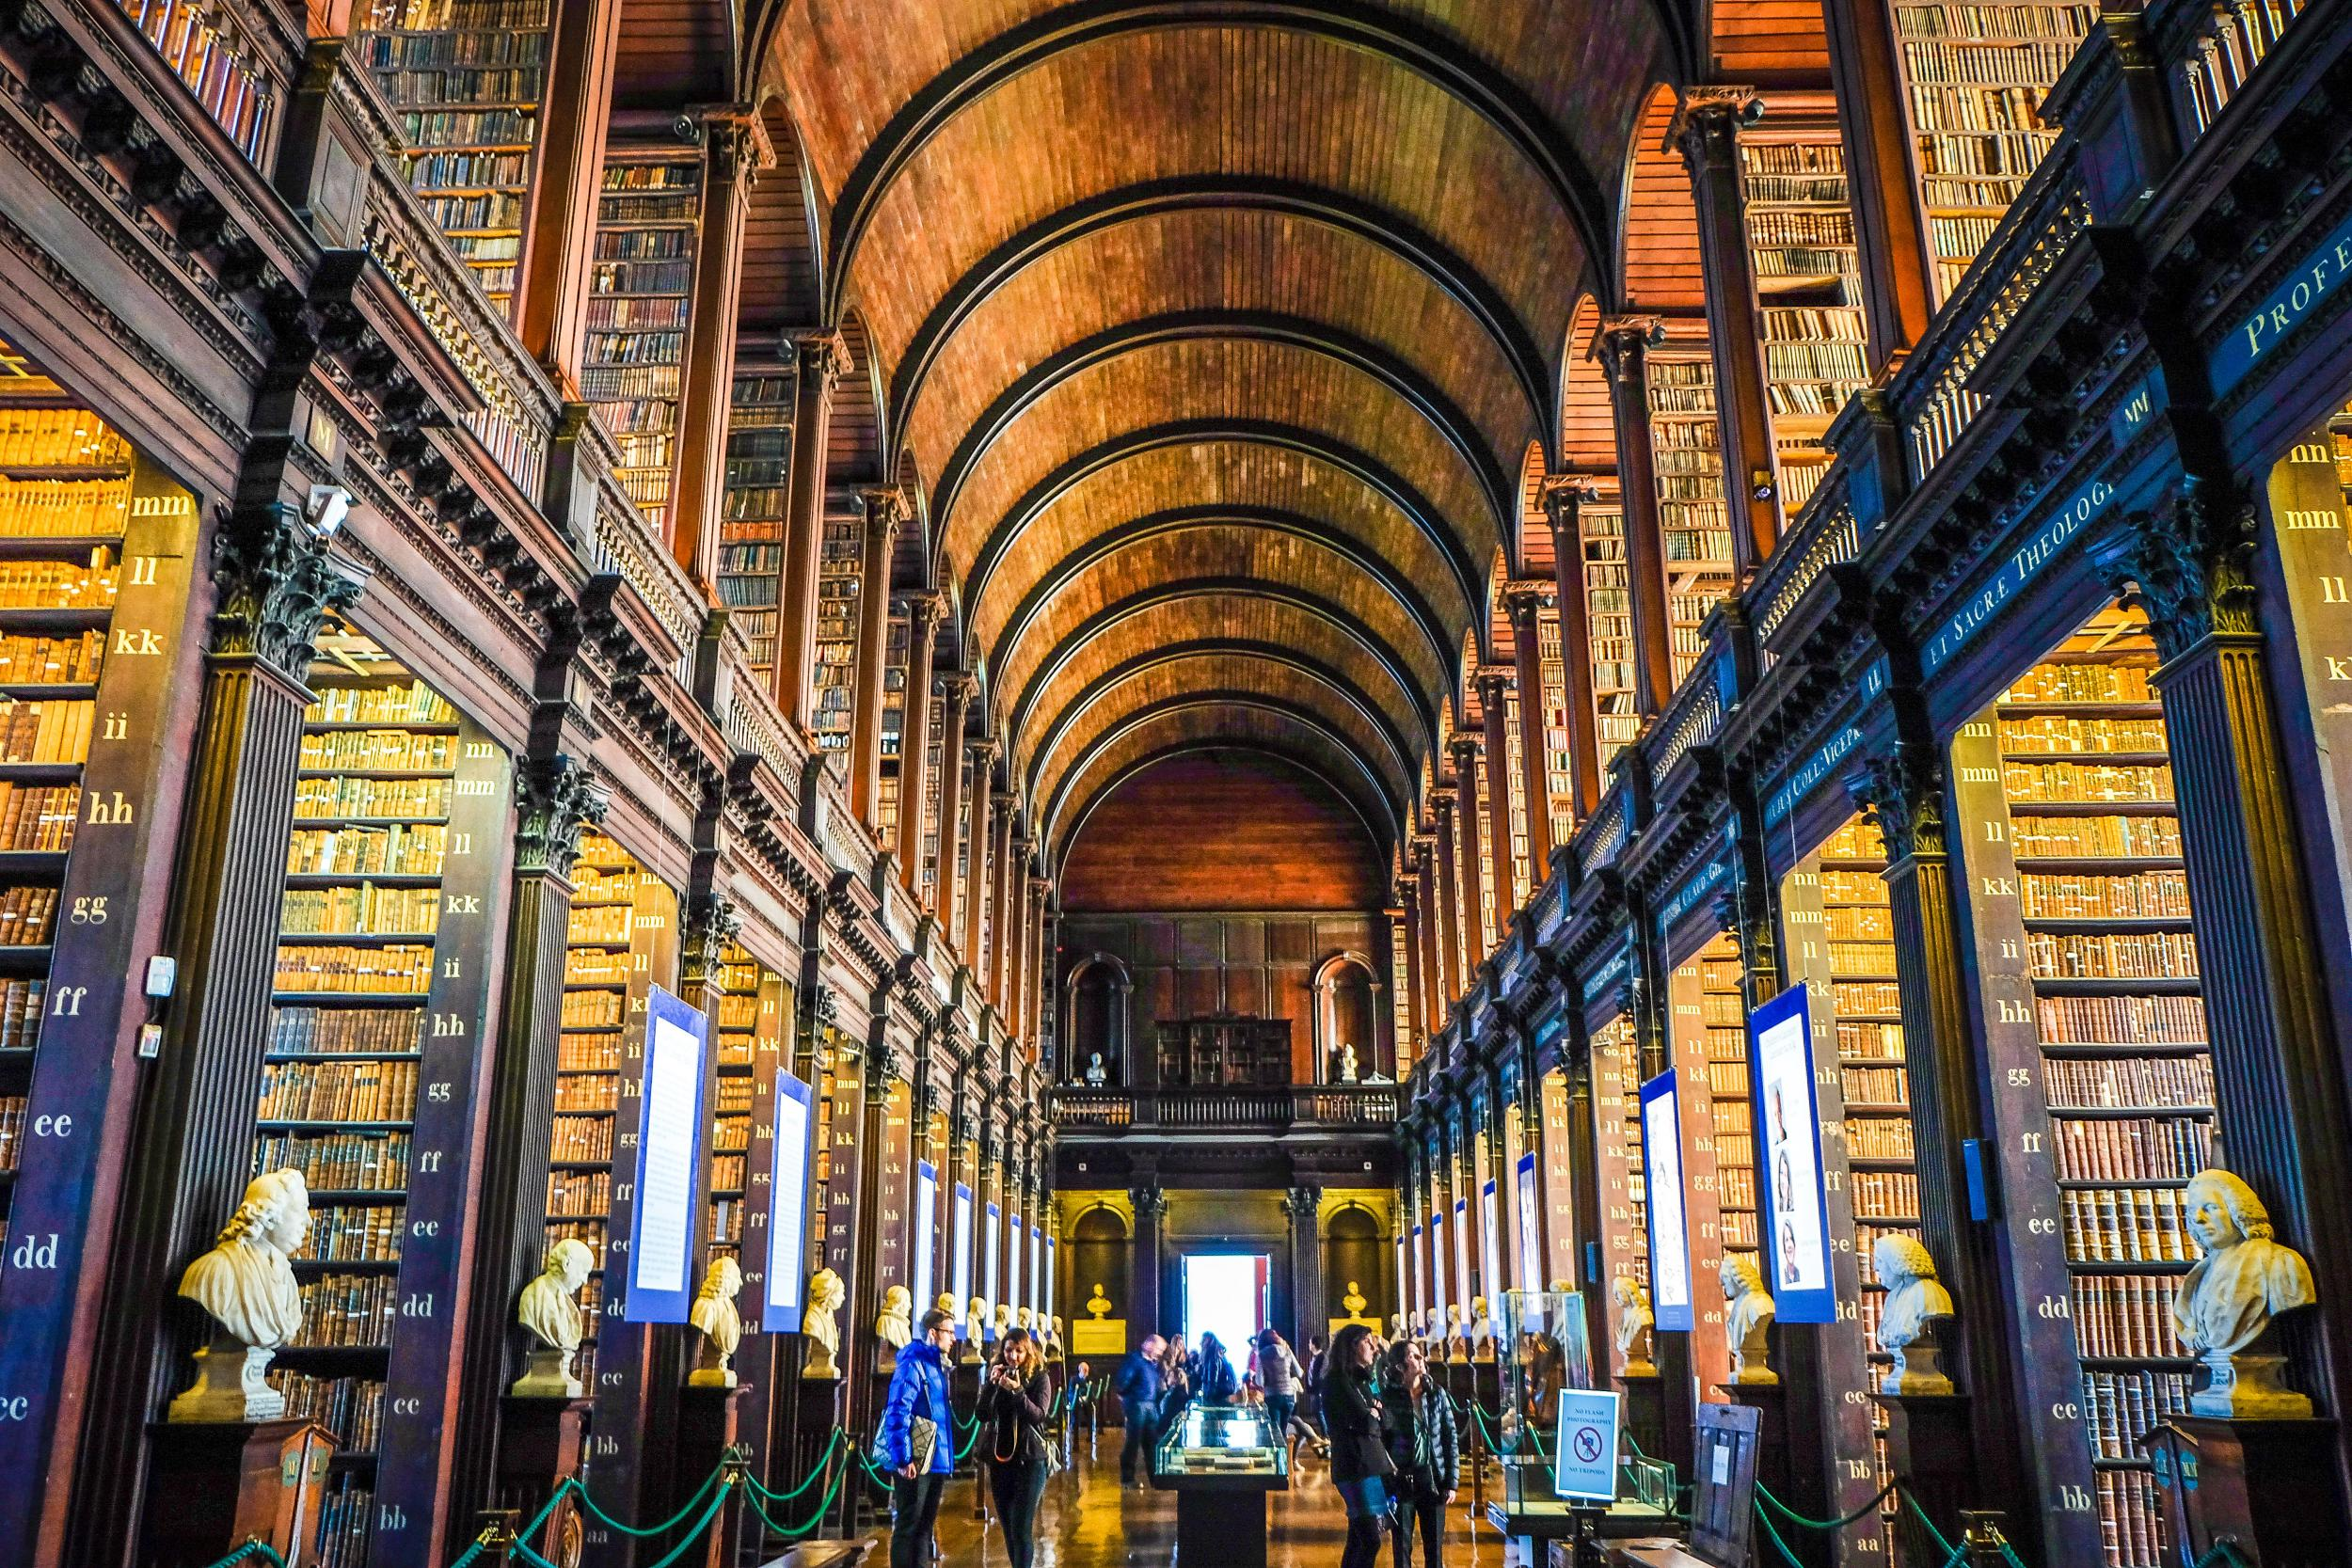 Book of Kells: History of world's most famous medieval manuscript